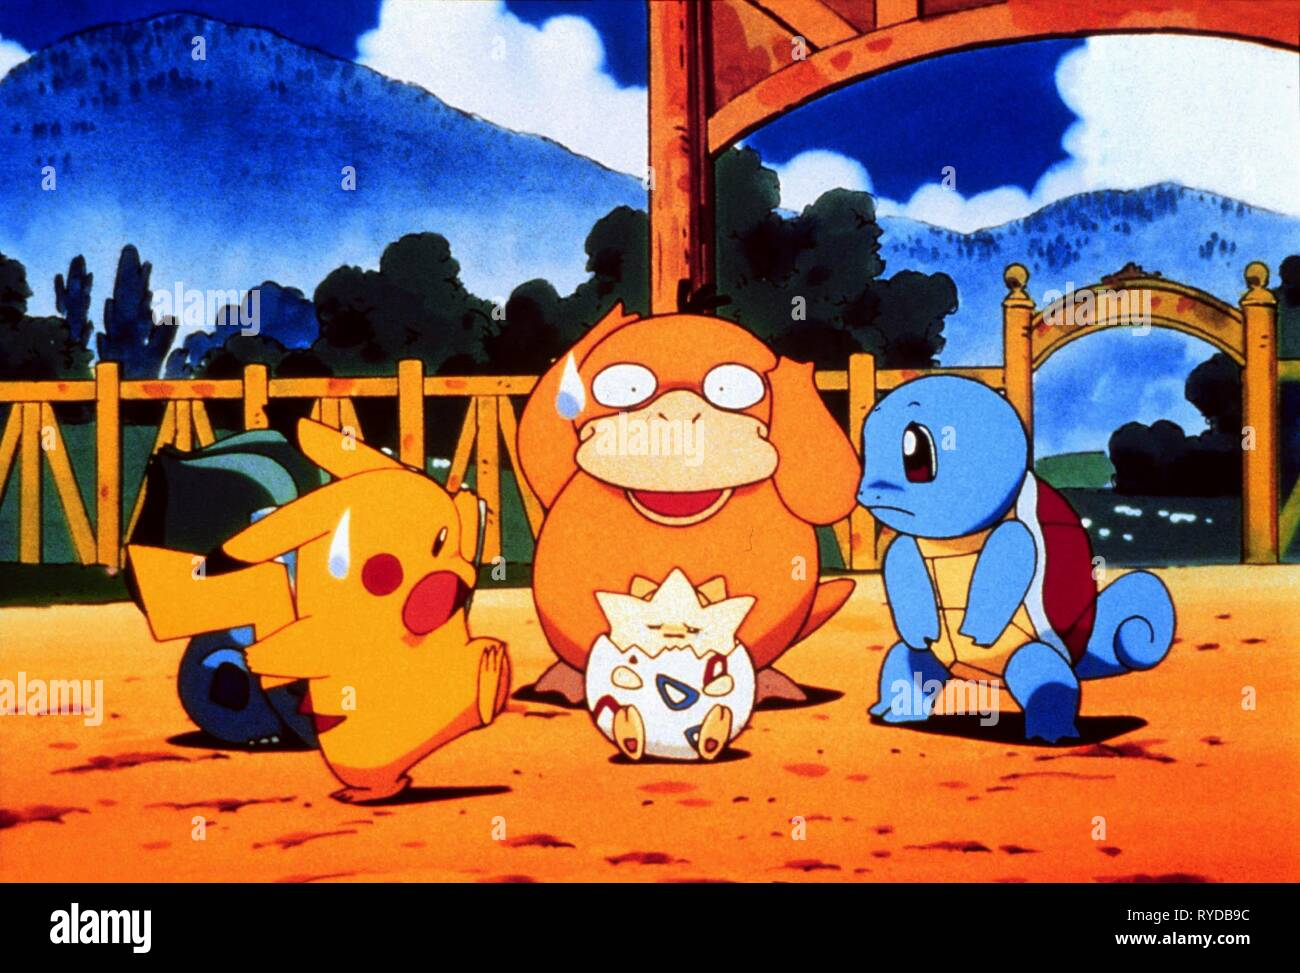 Pikachu Psyduck Togepy Squirtl Pokemon The First Movie